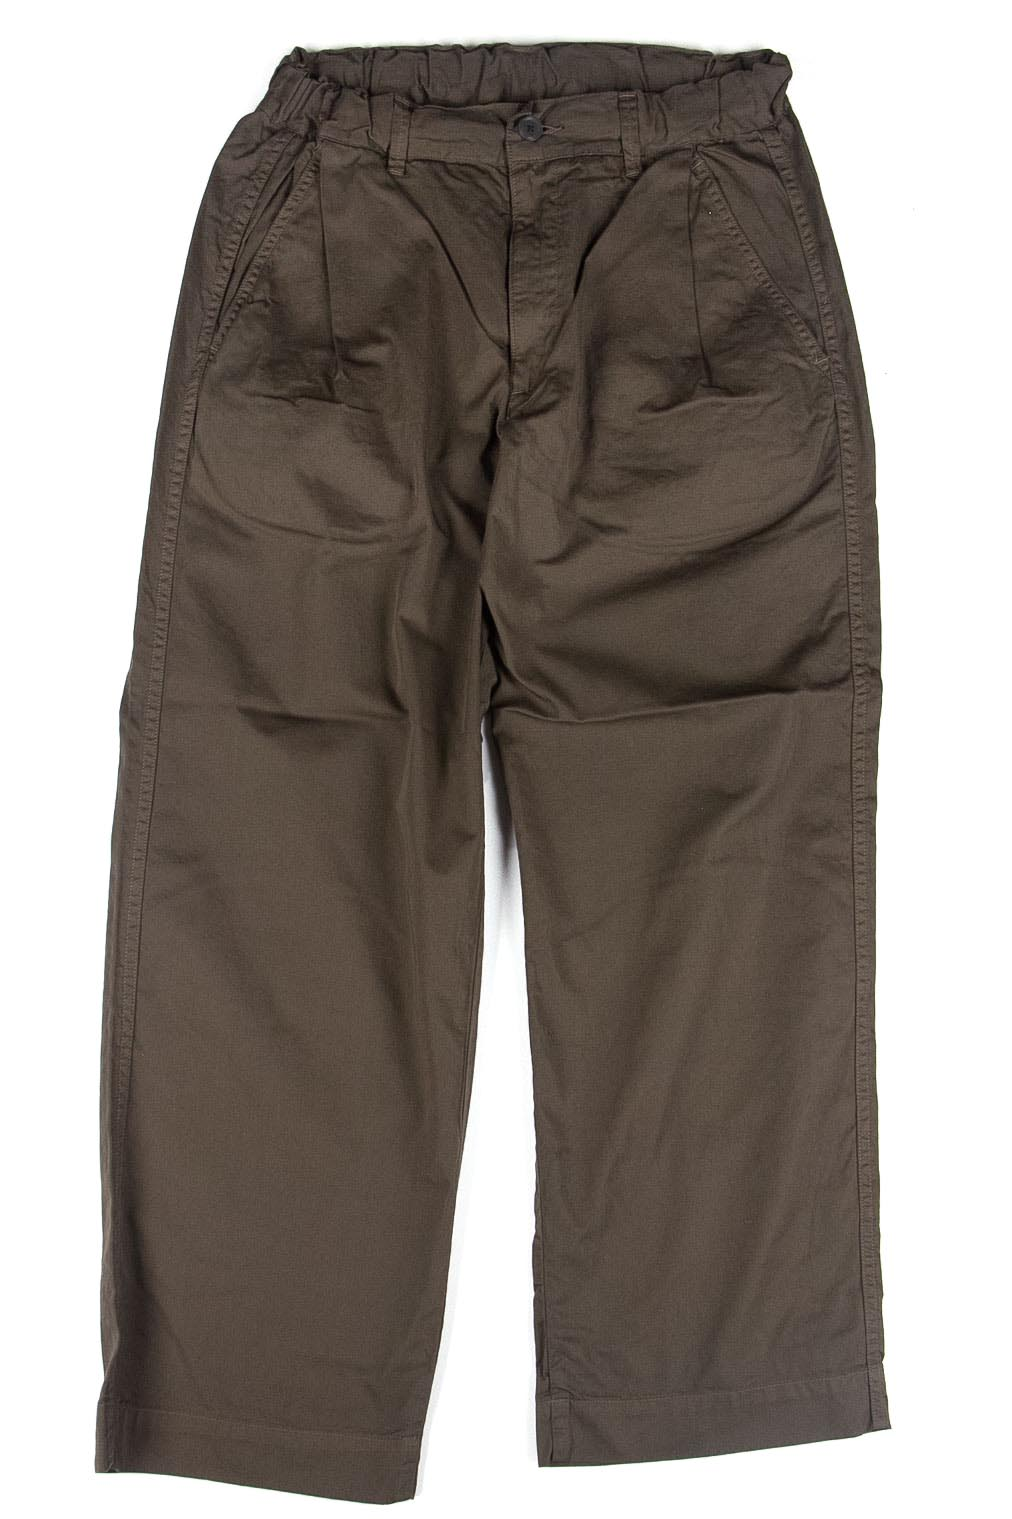 Manual Alphabet OD Long Pant - Khaki